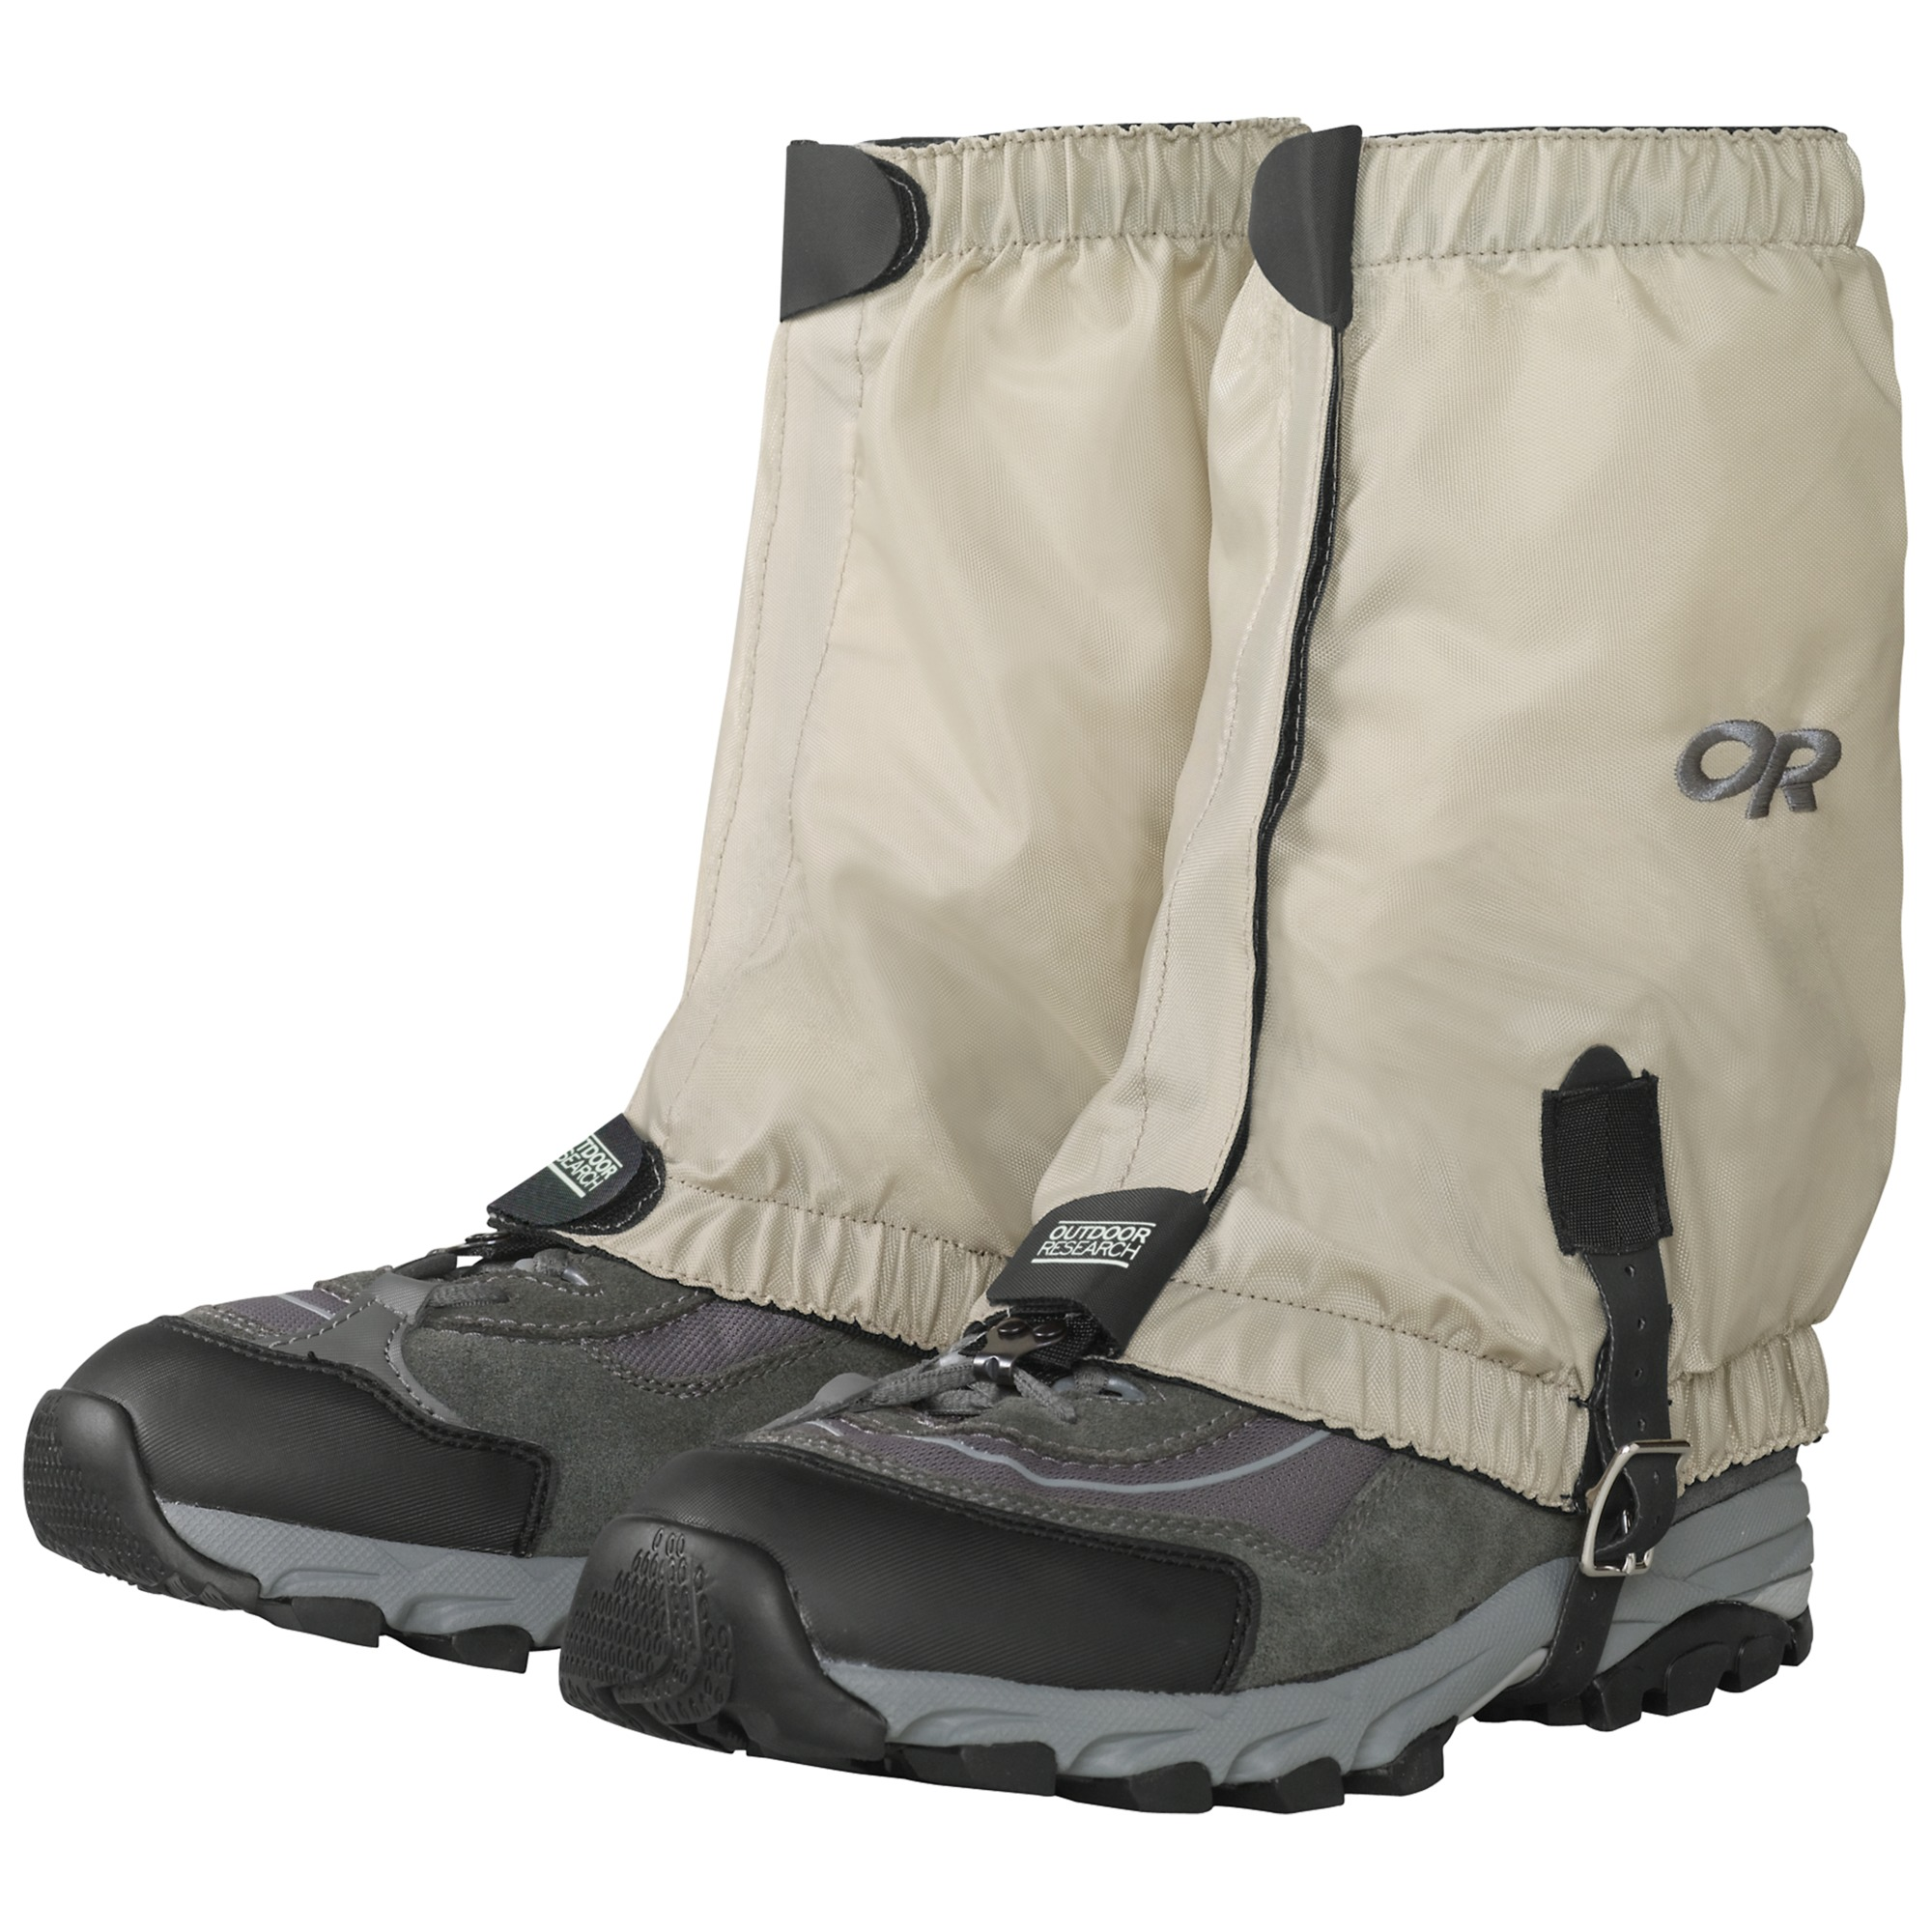 Outdoor Research Bugout Gaiters-tan-XL - Gr. XL